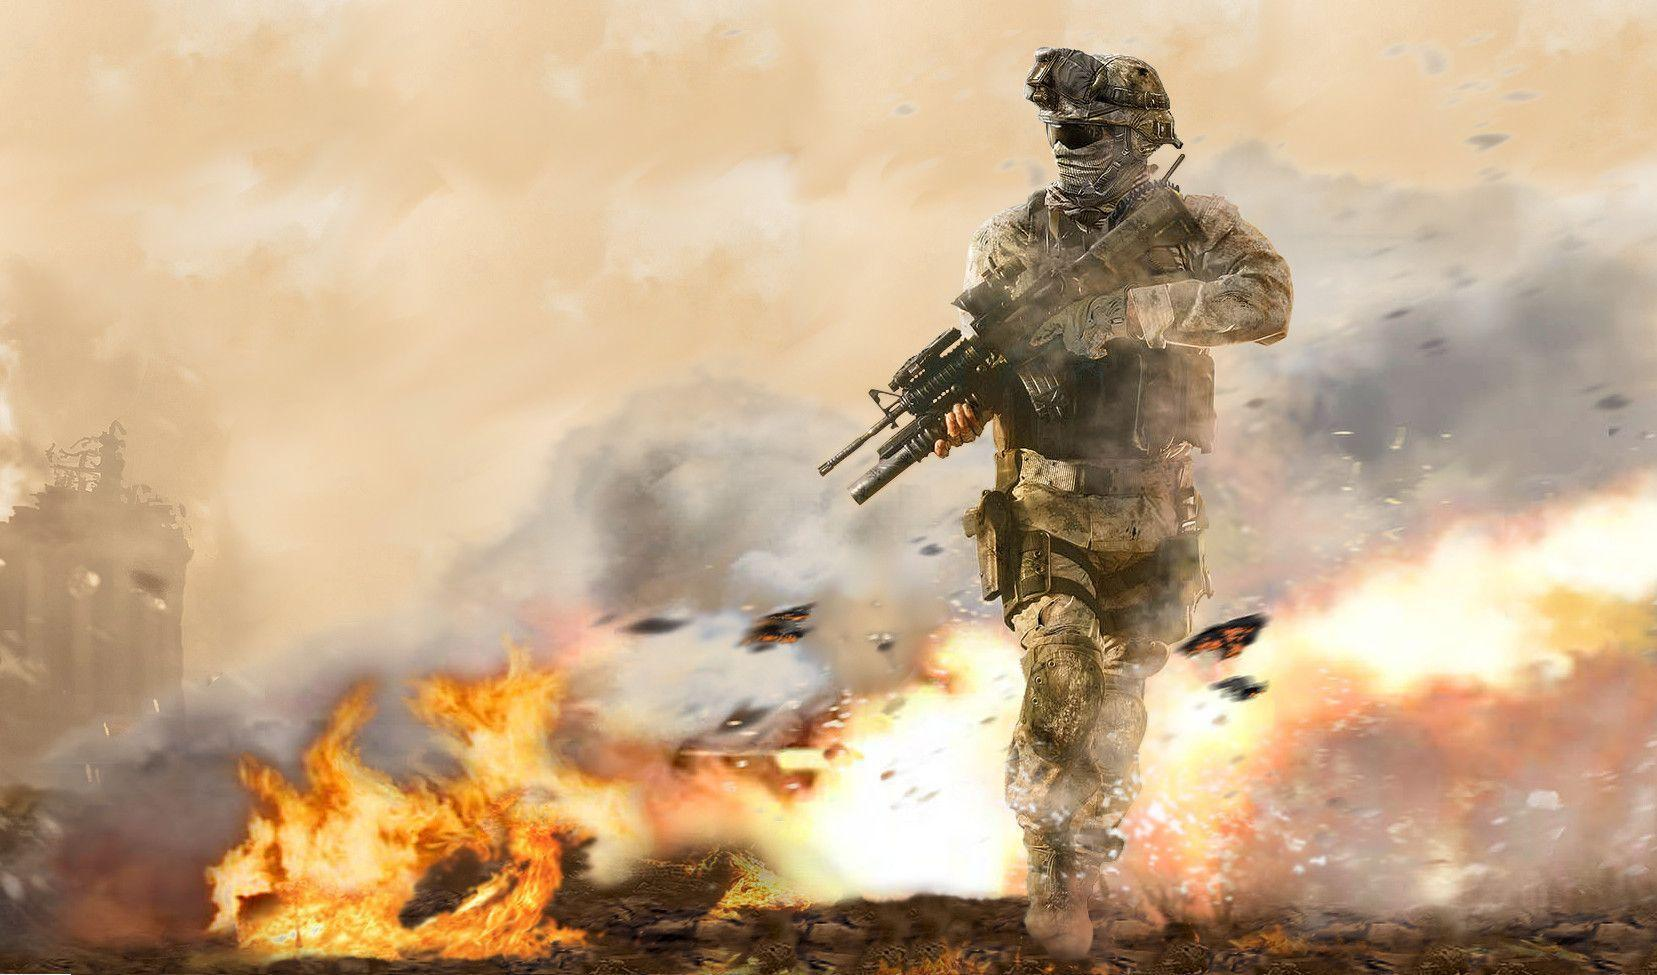 Mw2 Ghost Wallpaper Hd Delta Force Wallpapers Wallpaper Cave